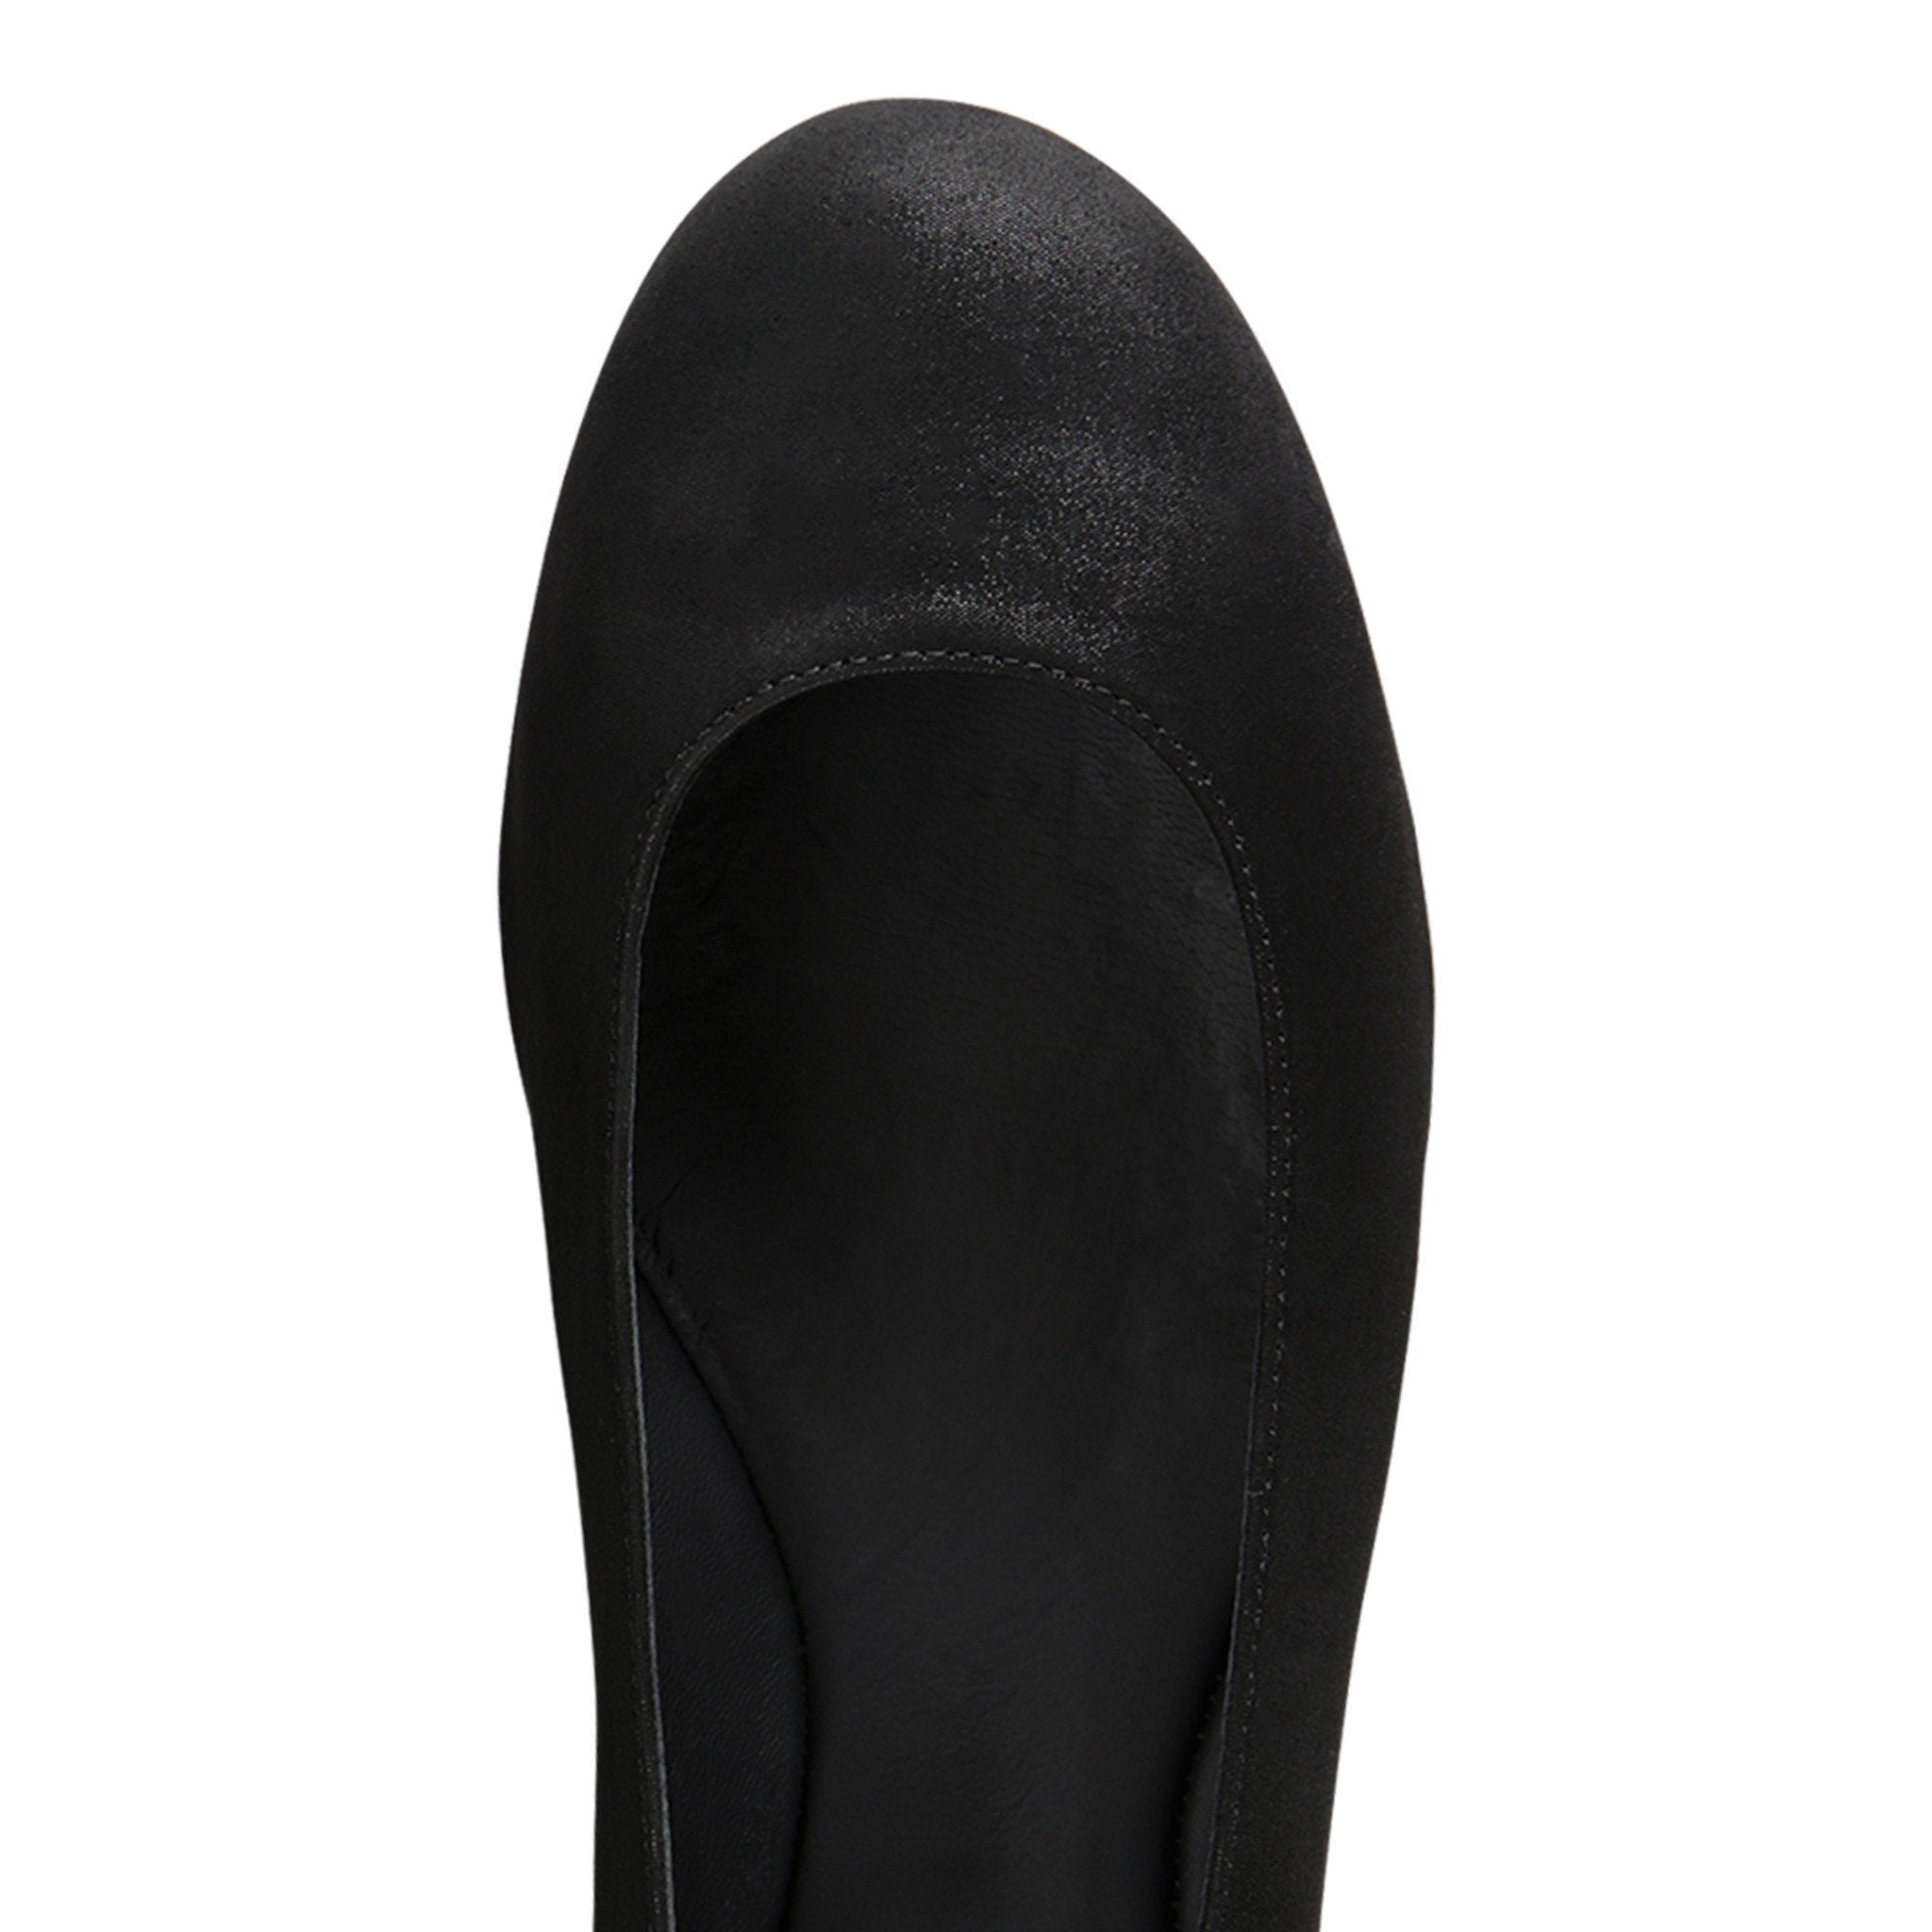 VENEZIA - Hydra Nero, VIAJIYU - Women's Hand Made Sustainable Luxury Shoes. Made in Italy. Made to Order.